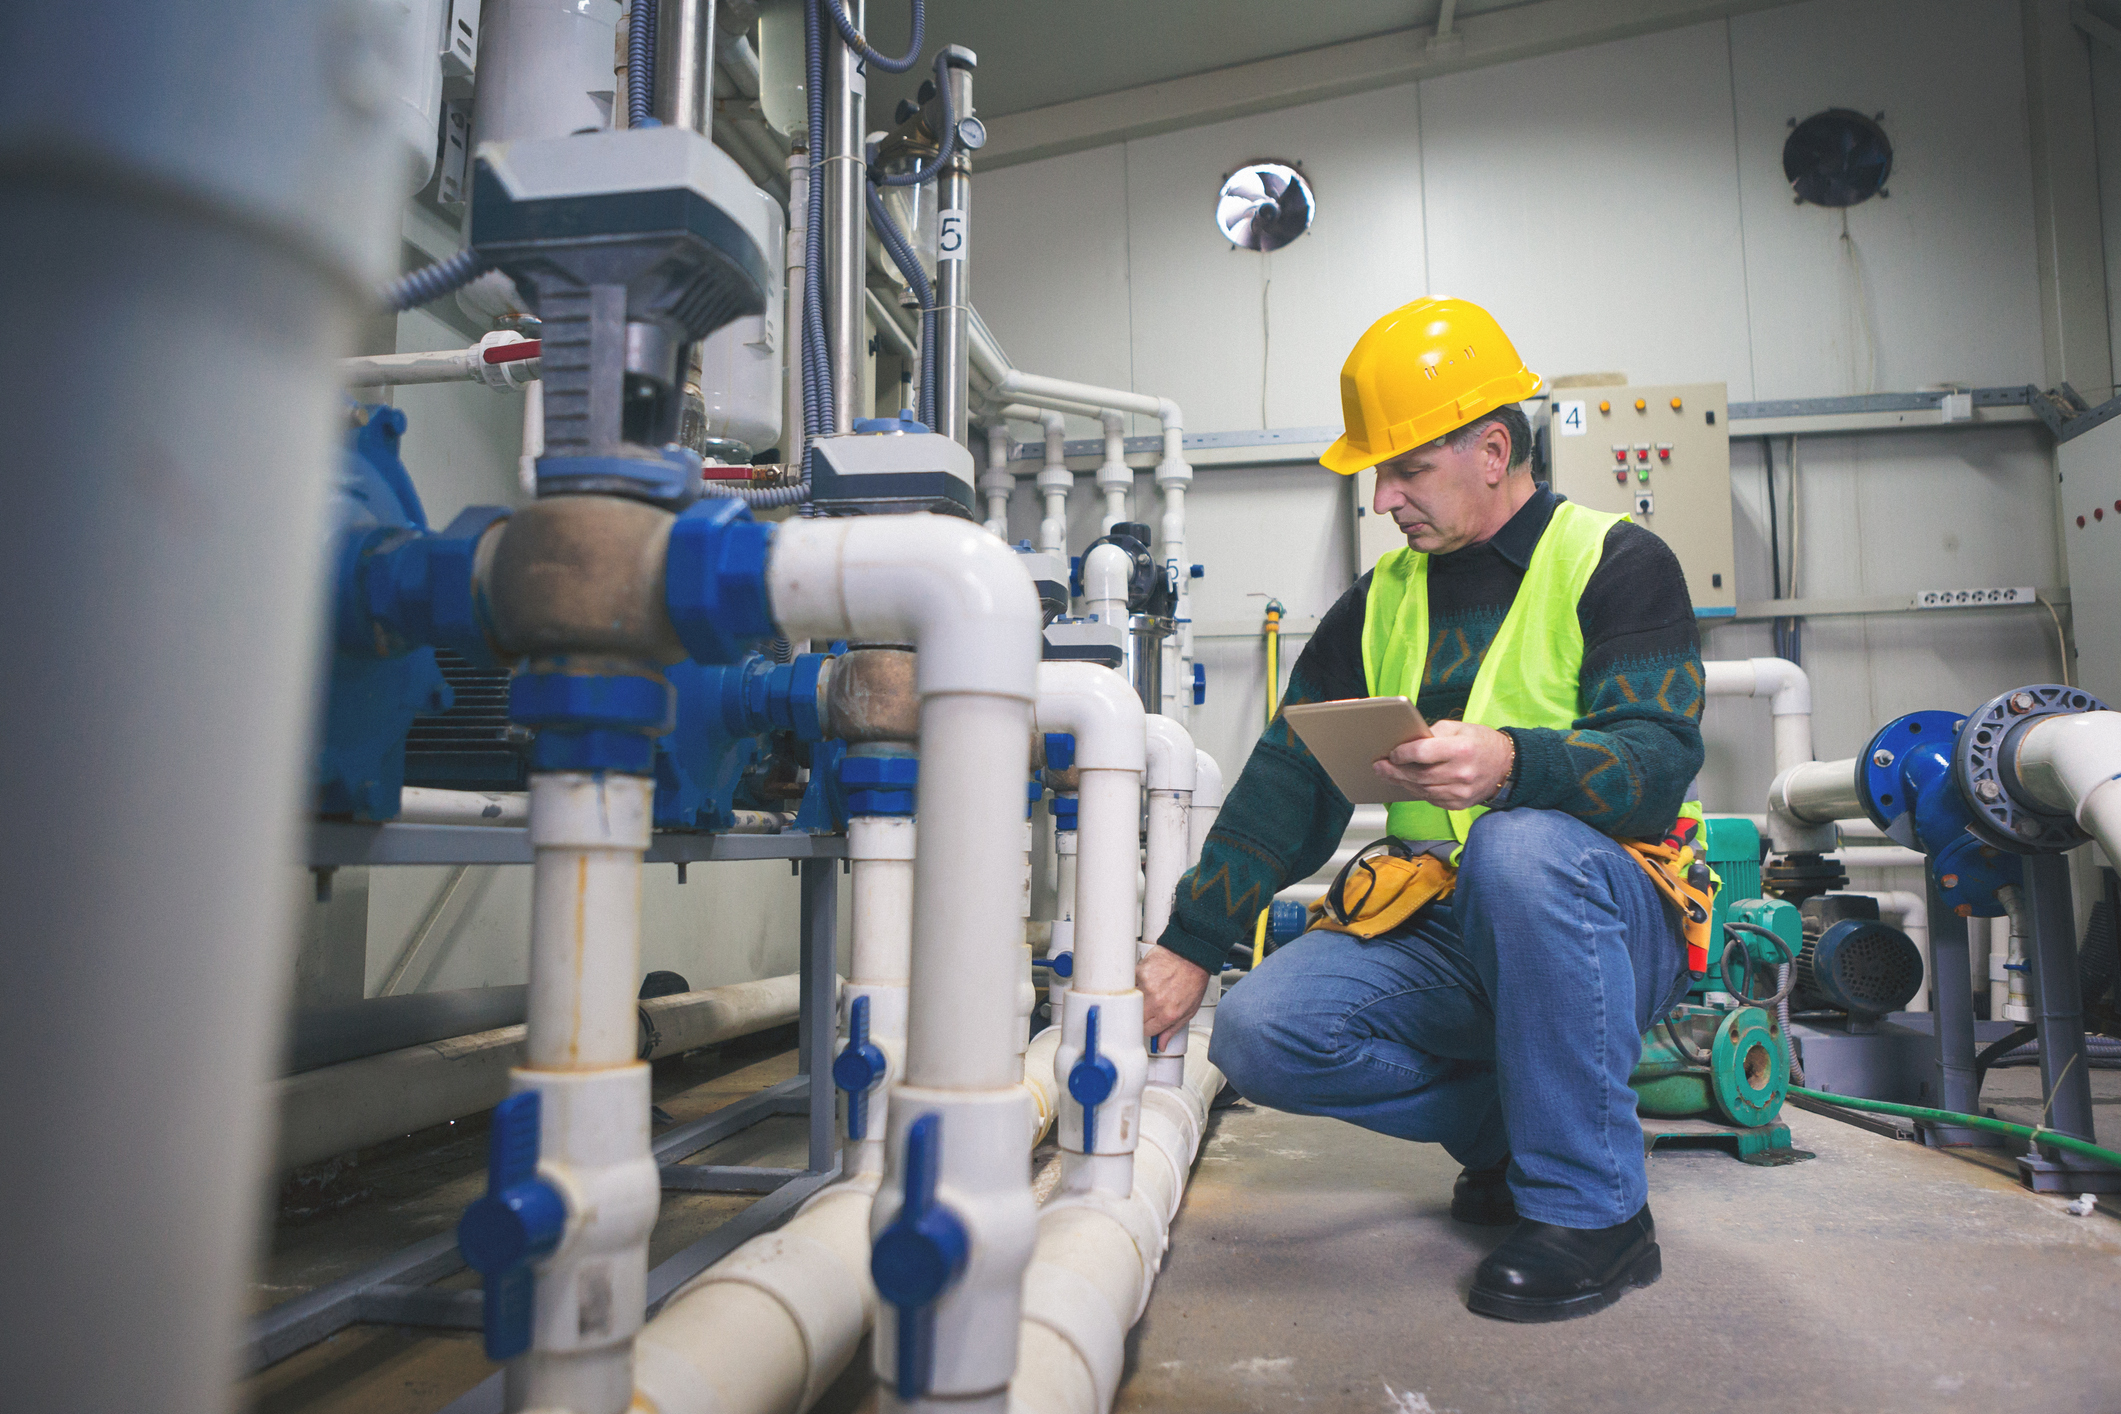 Annual Preventative Maintenance Checklist for Commercial Boiler Systems